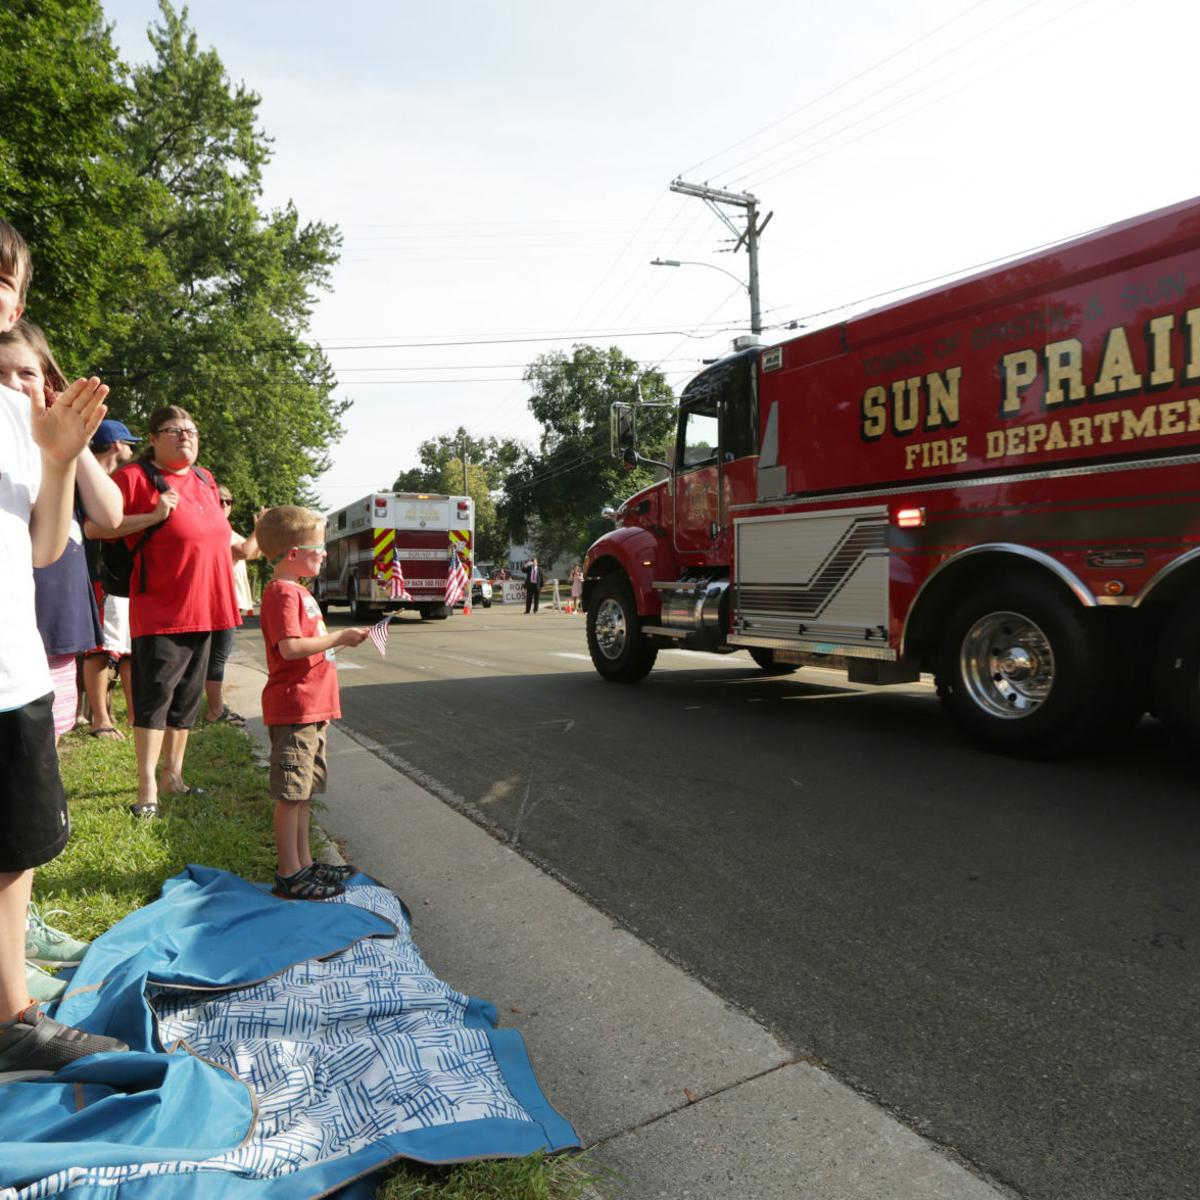 Unnamed contractor 'responsible' for Sun Prairie explosion